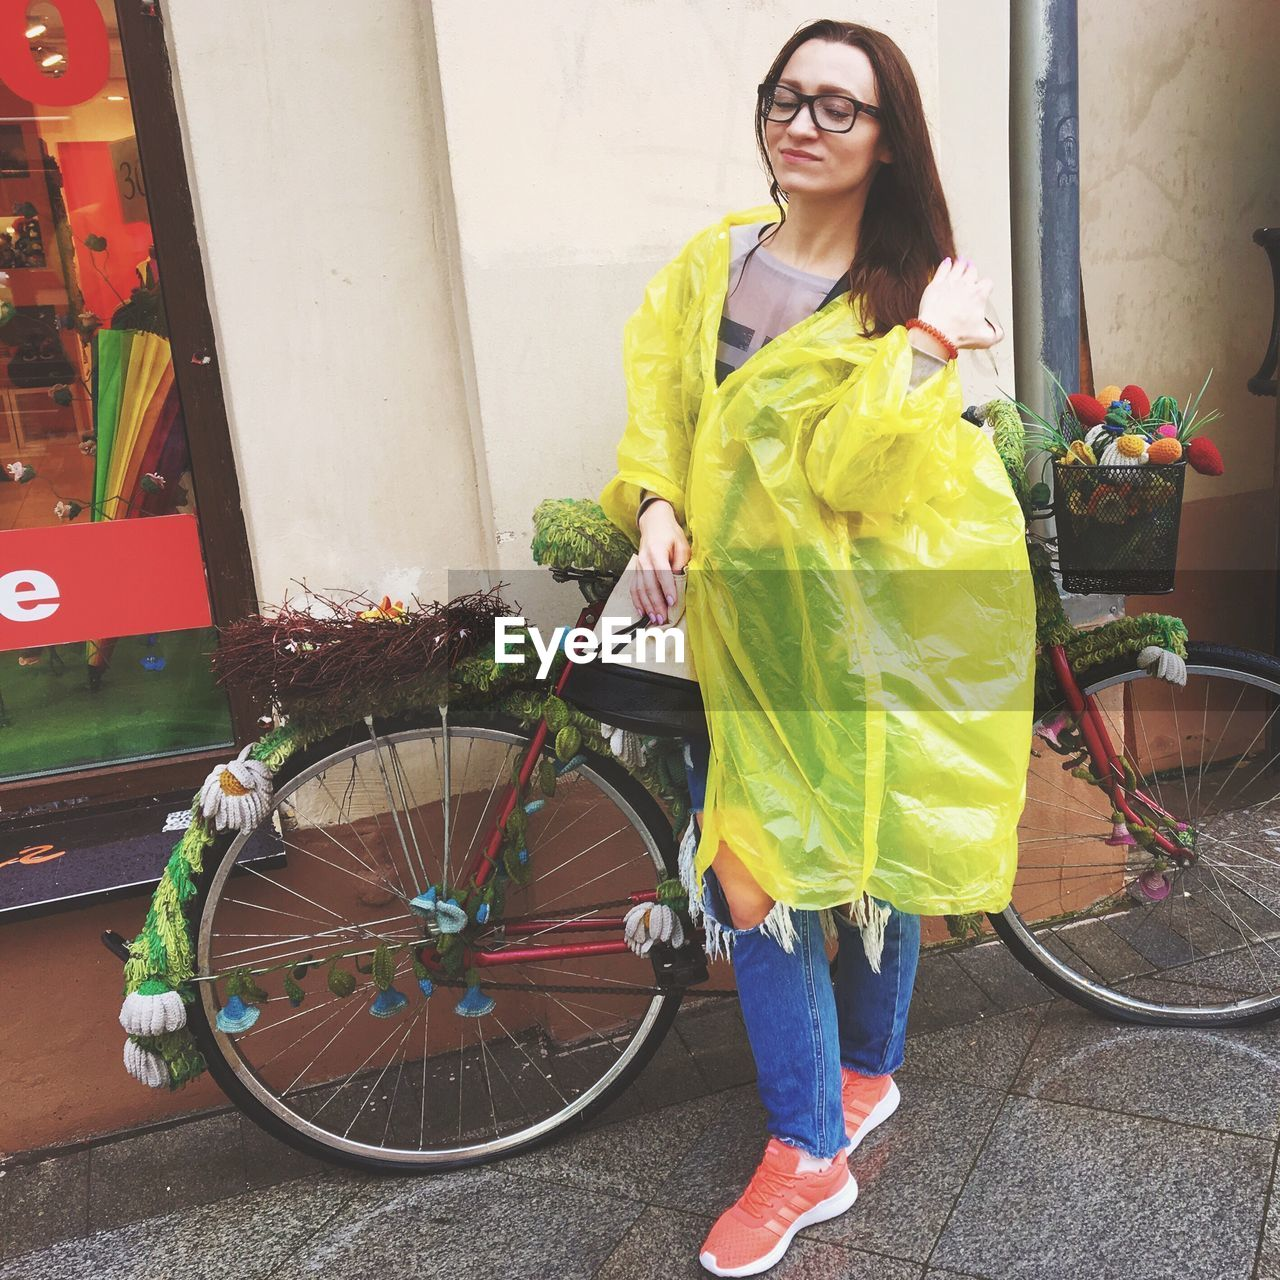 Woman wearing yellow raincoat standing by bicycle against wall